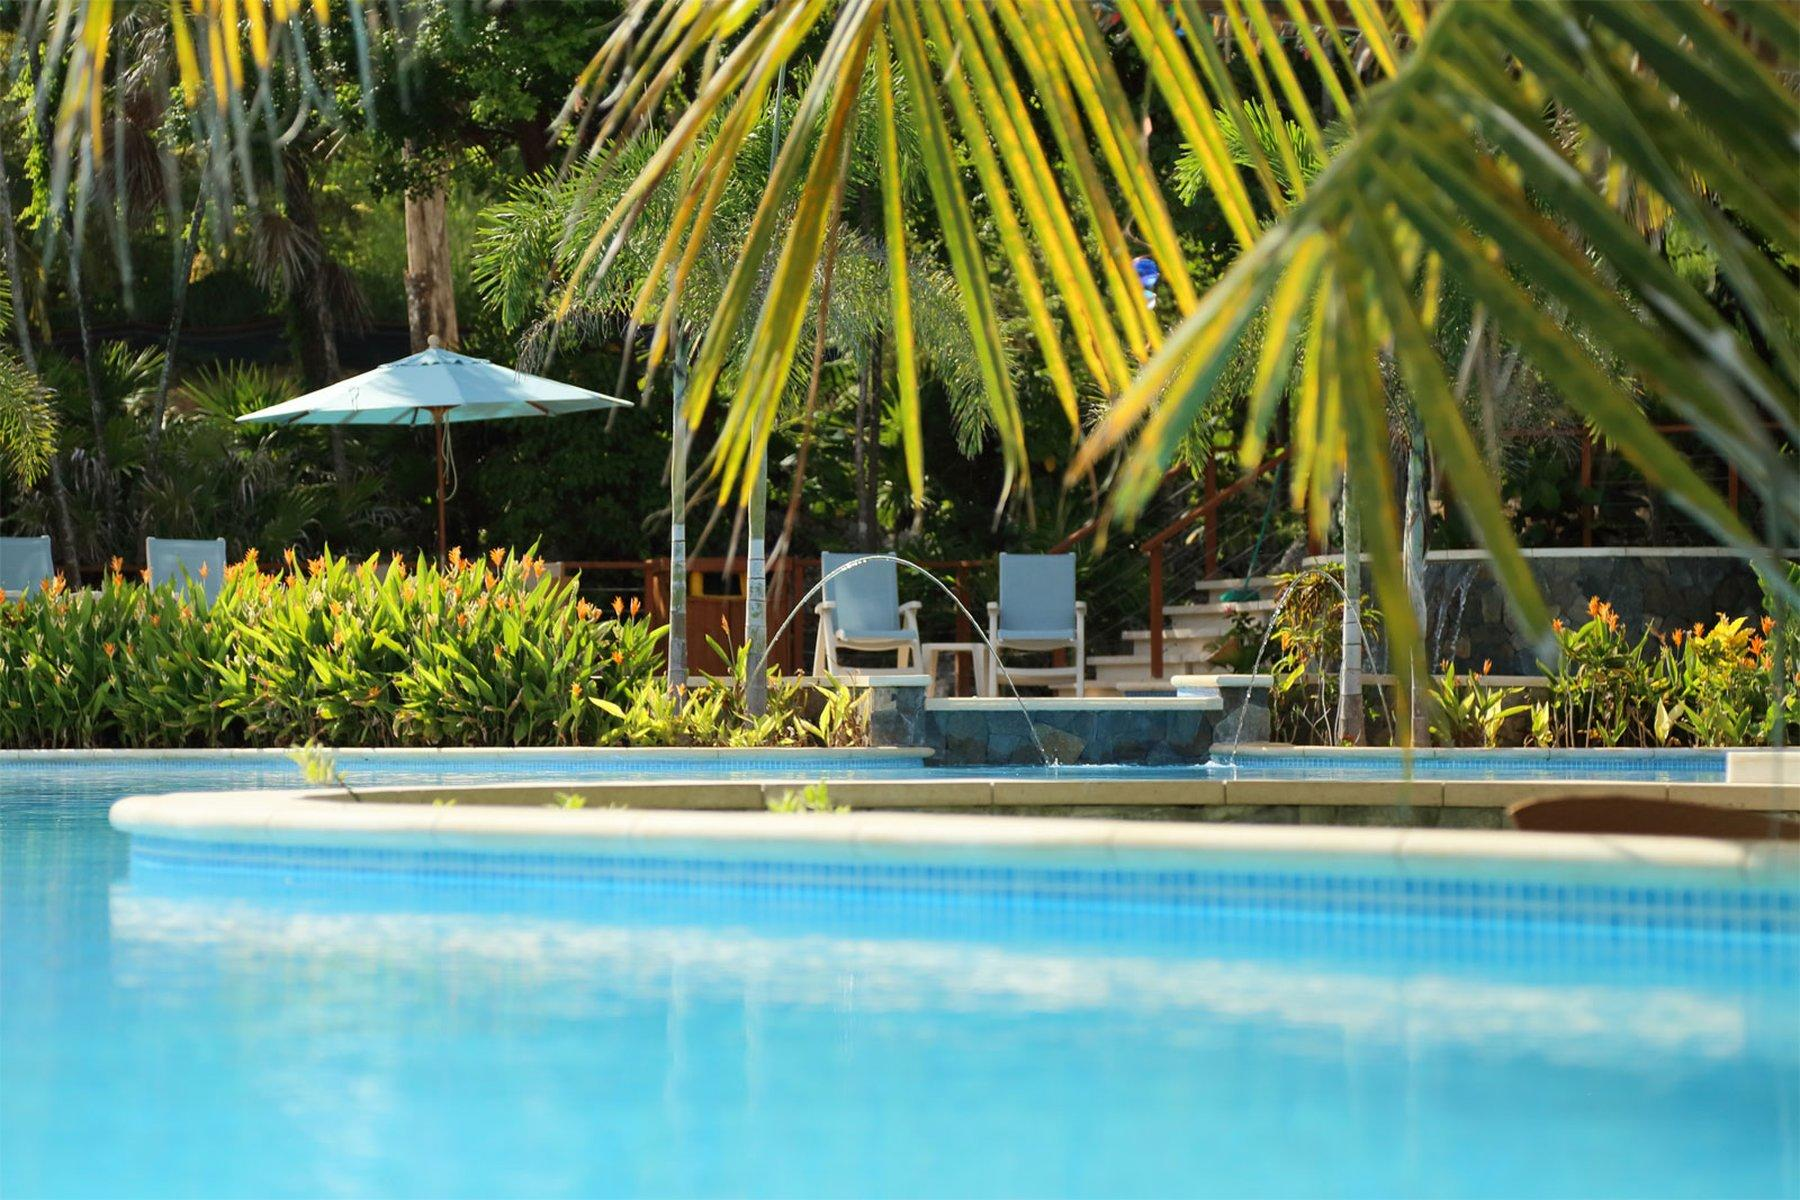 pool with lounge chairs and umbrella